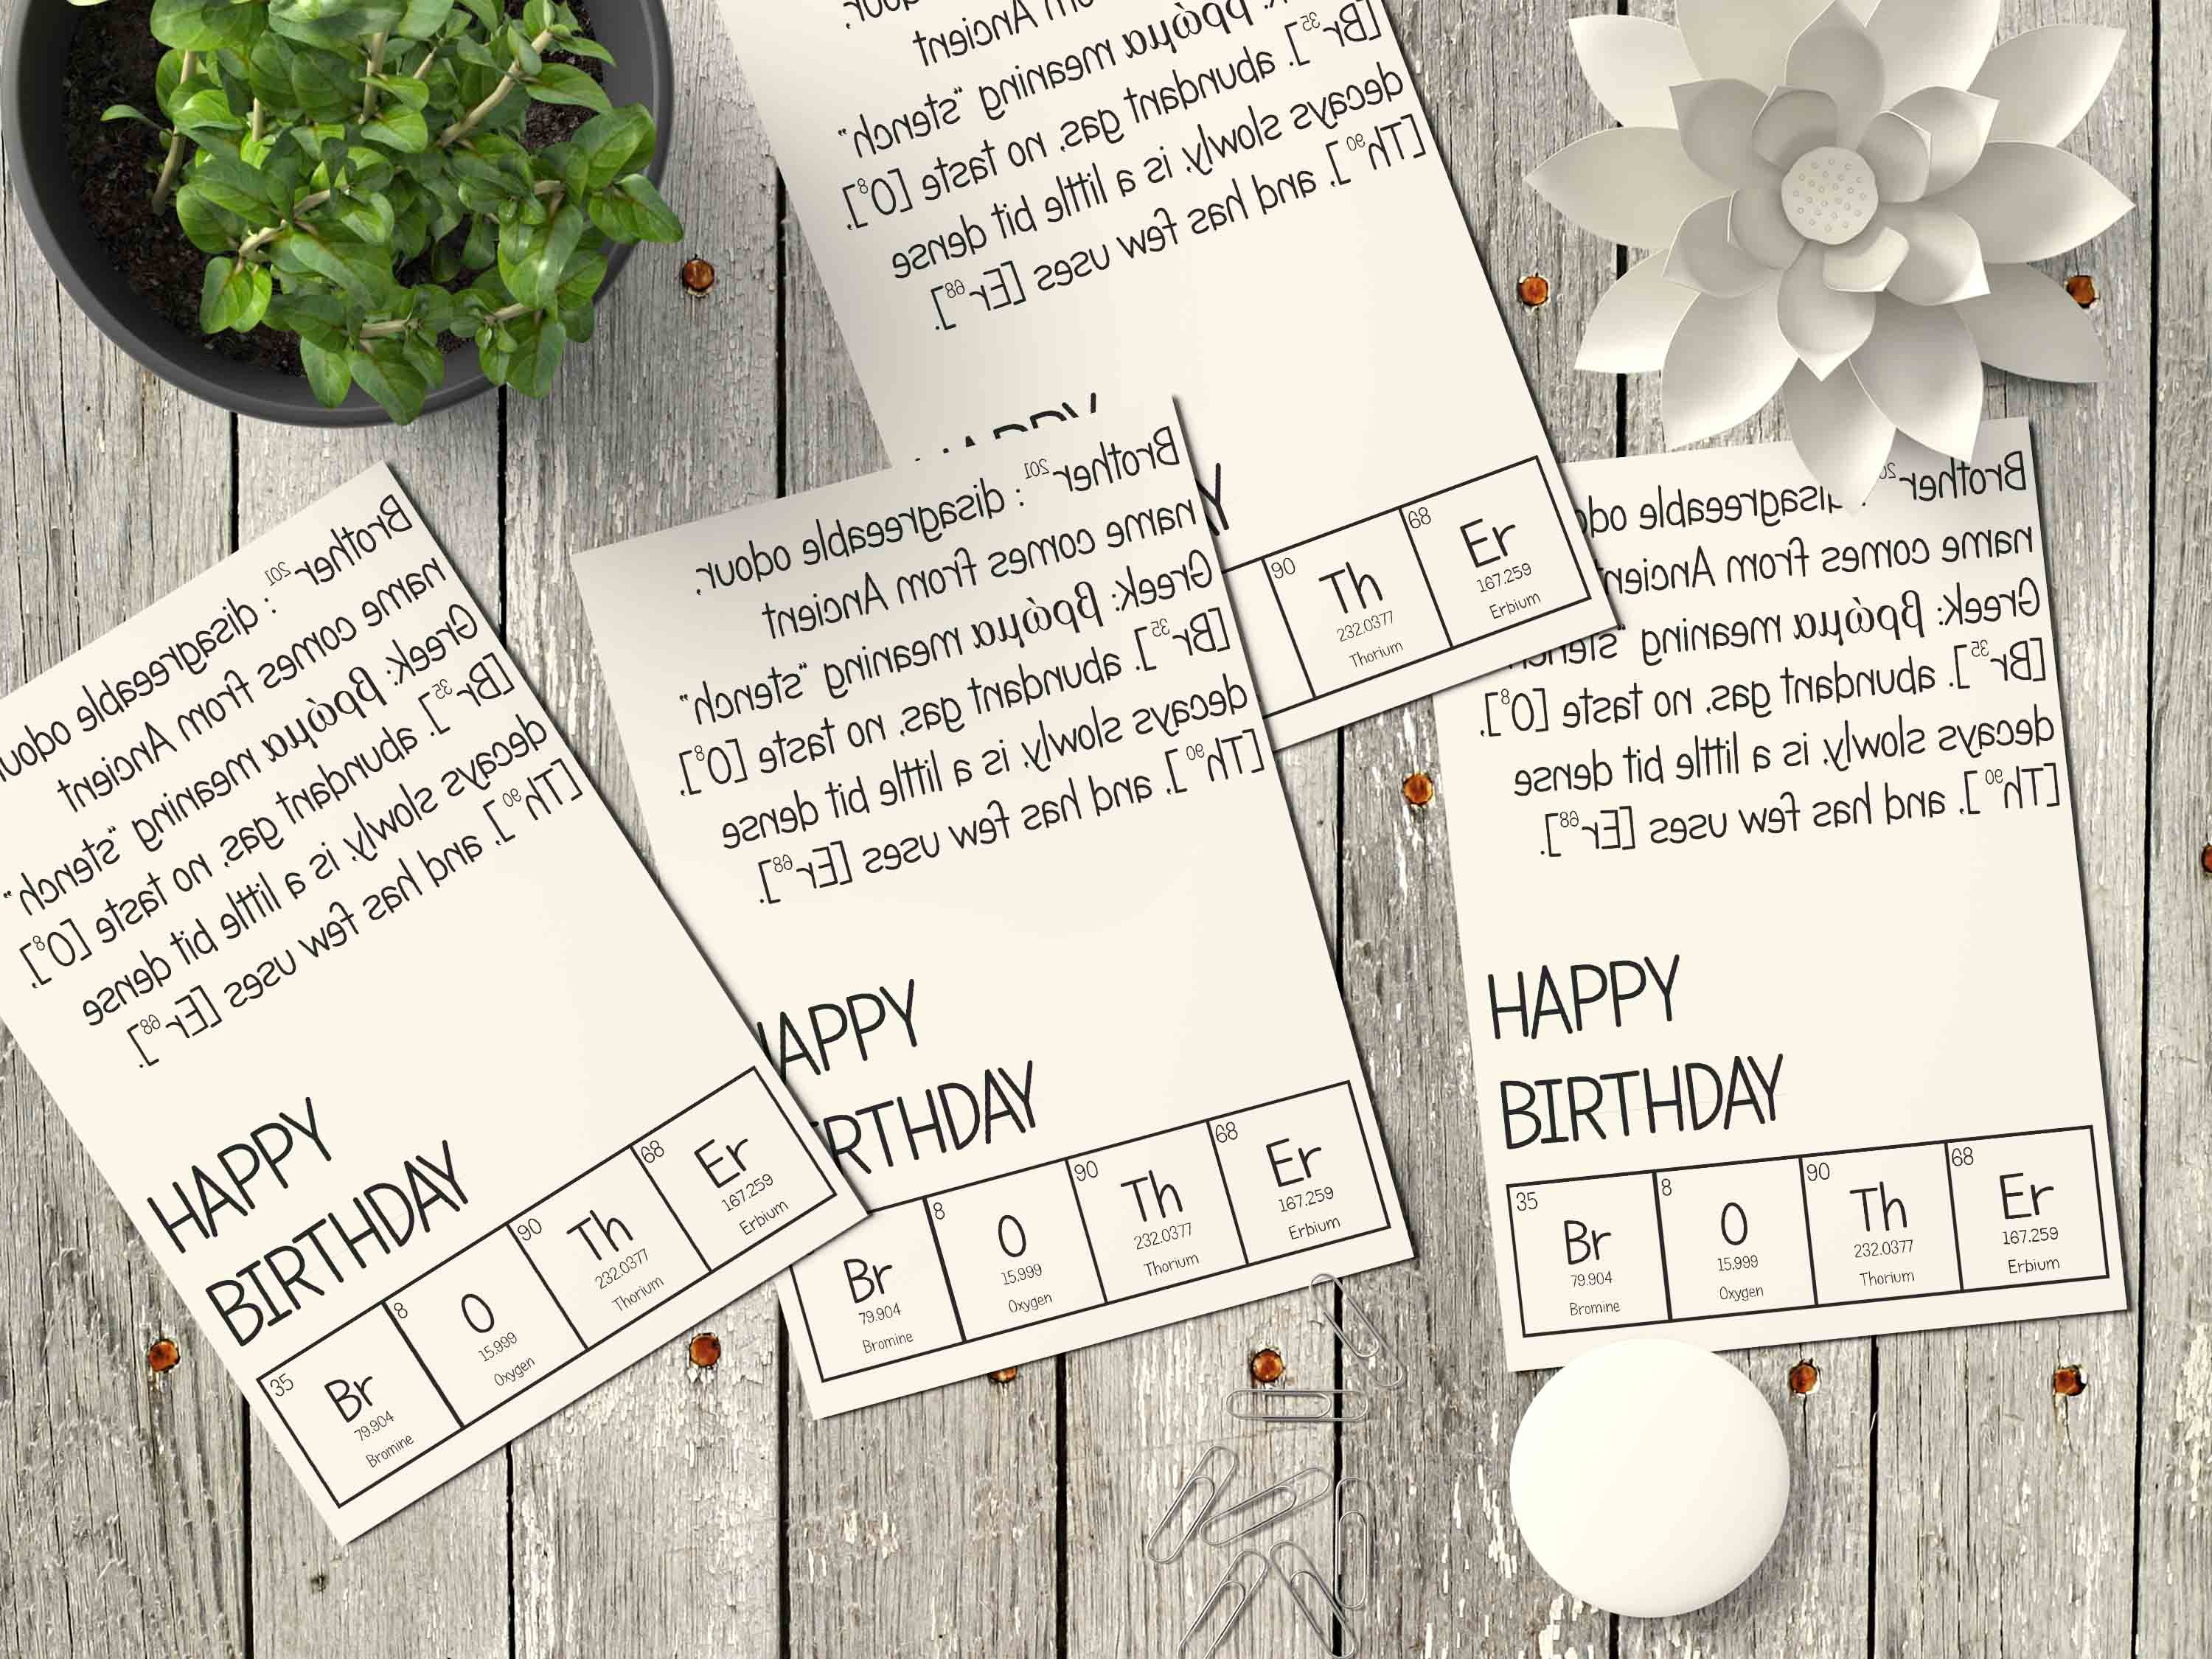 birthday card for brother with periodic elements formation on it